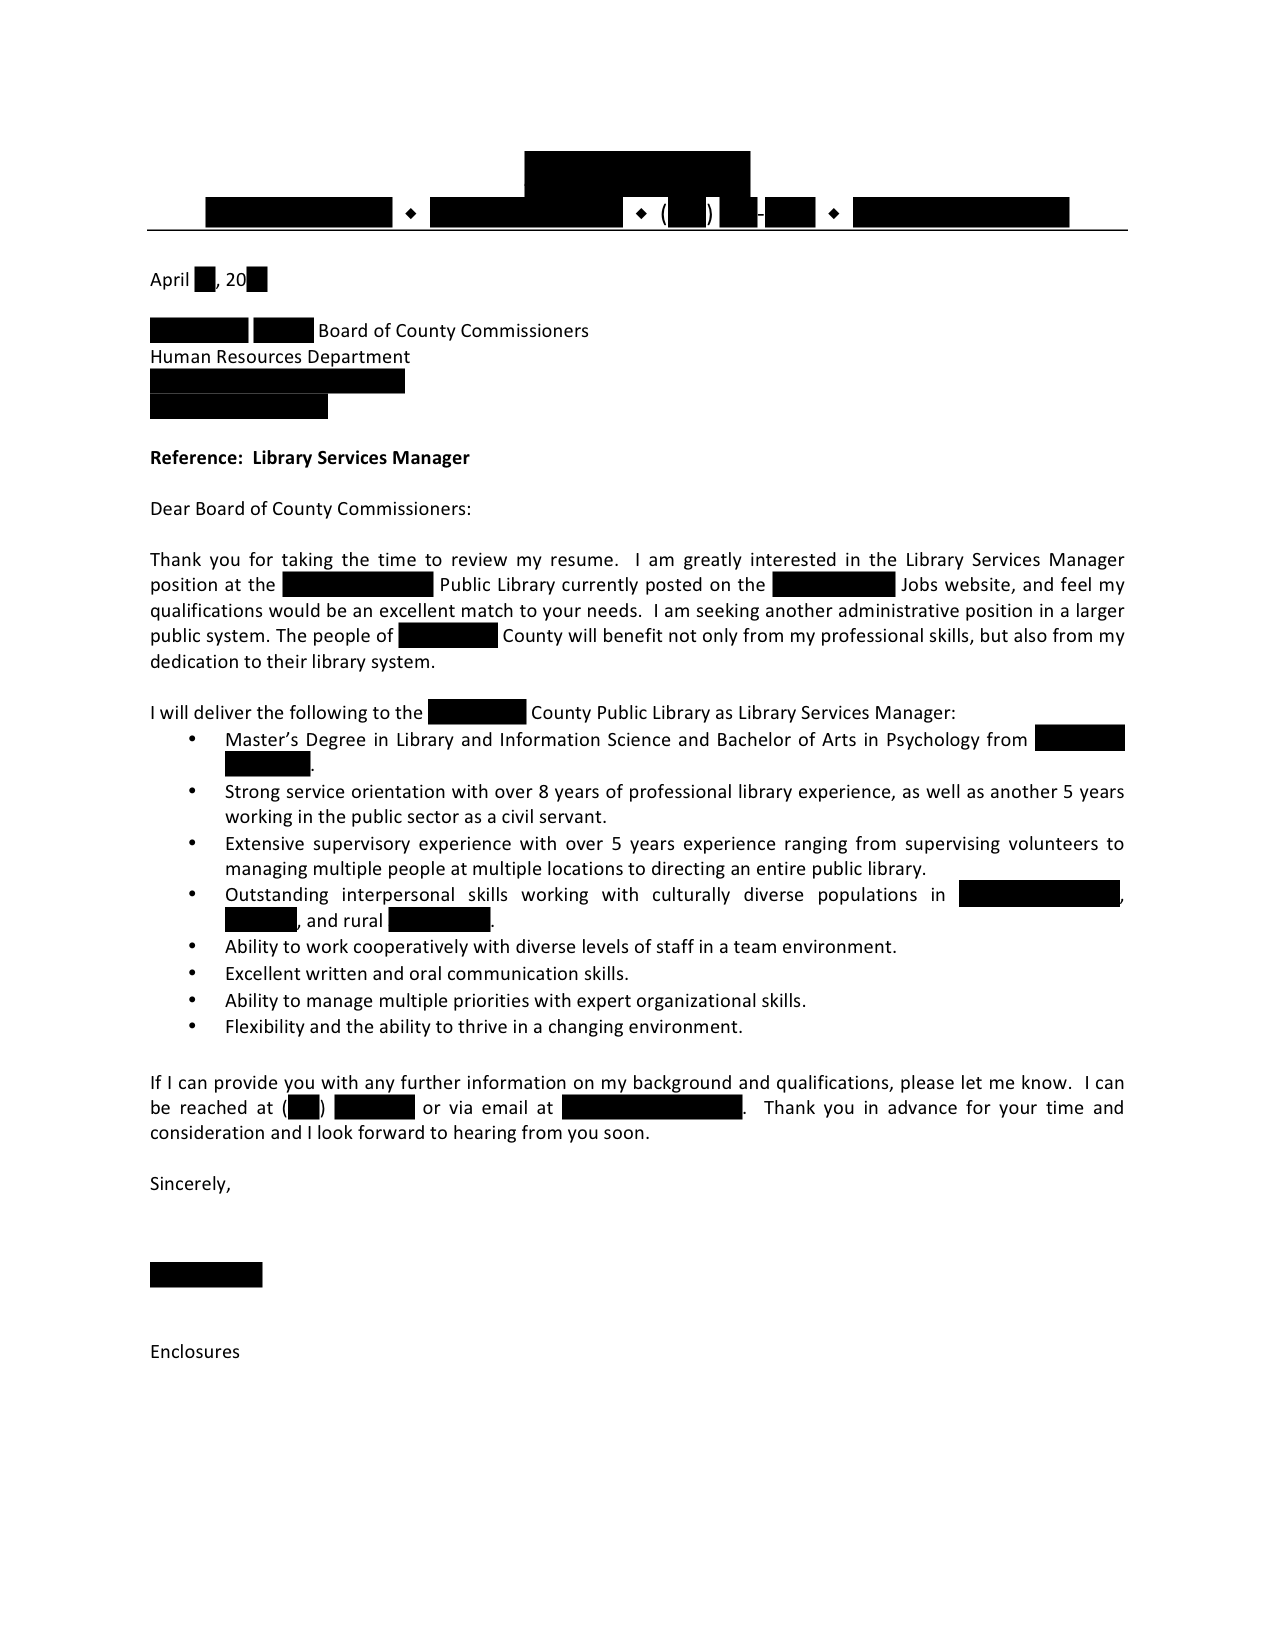 library services manager cover letter open cover letters advertisements